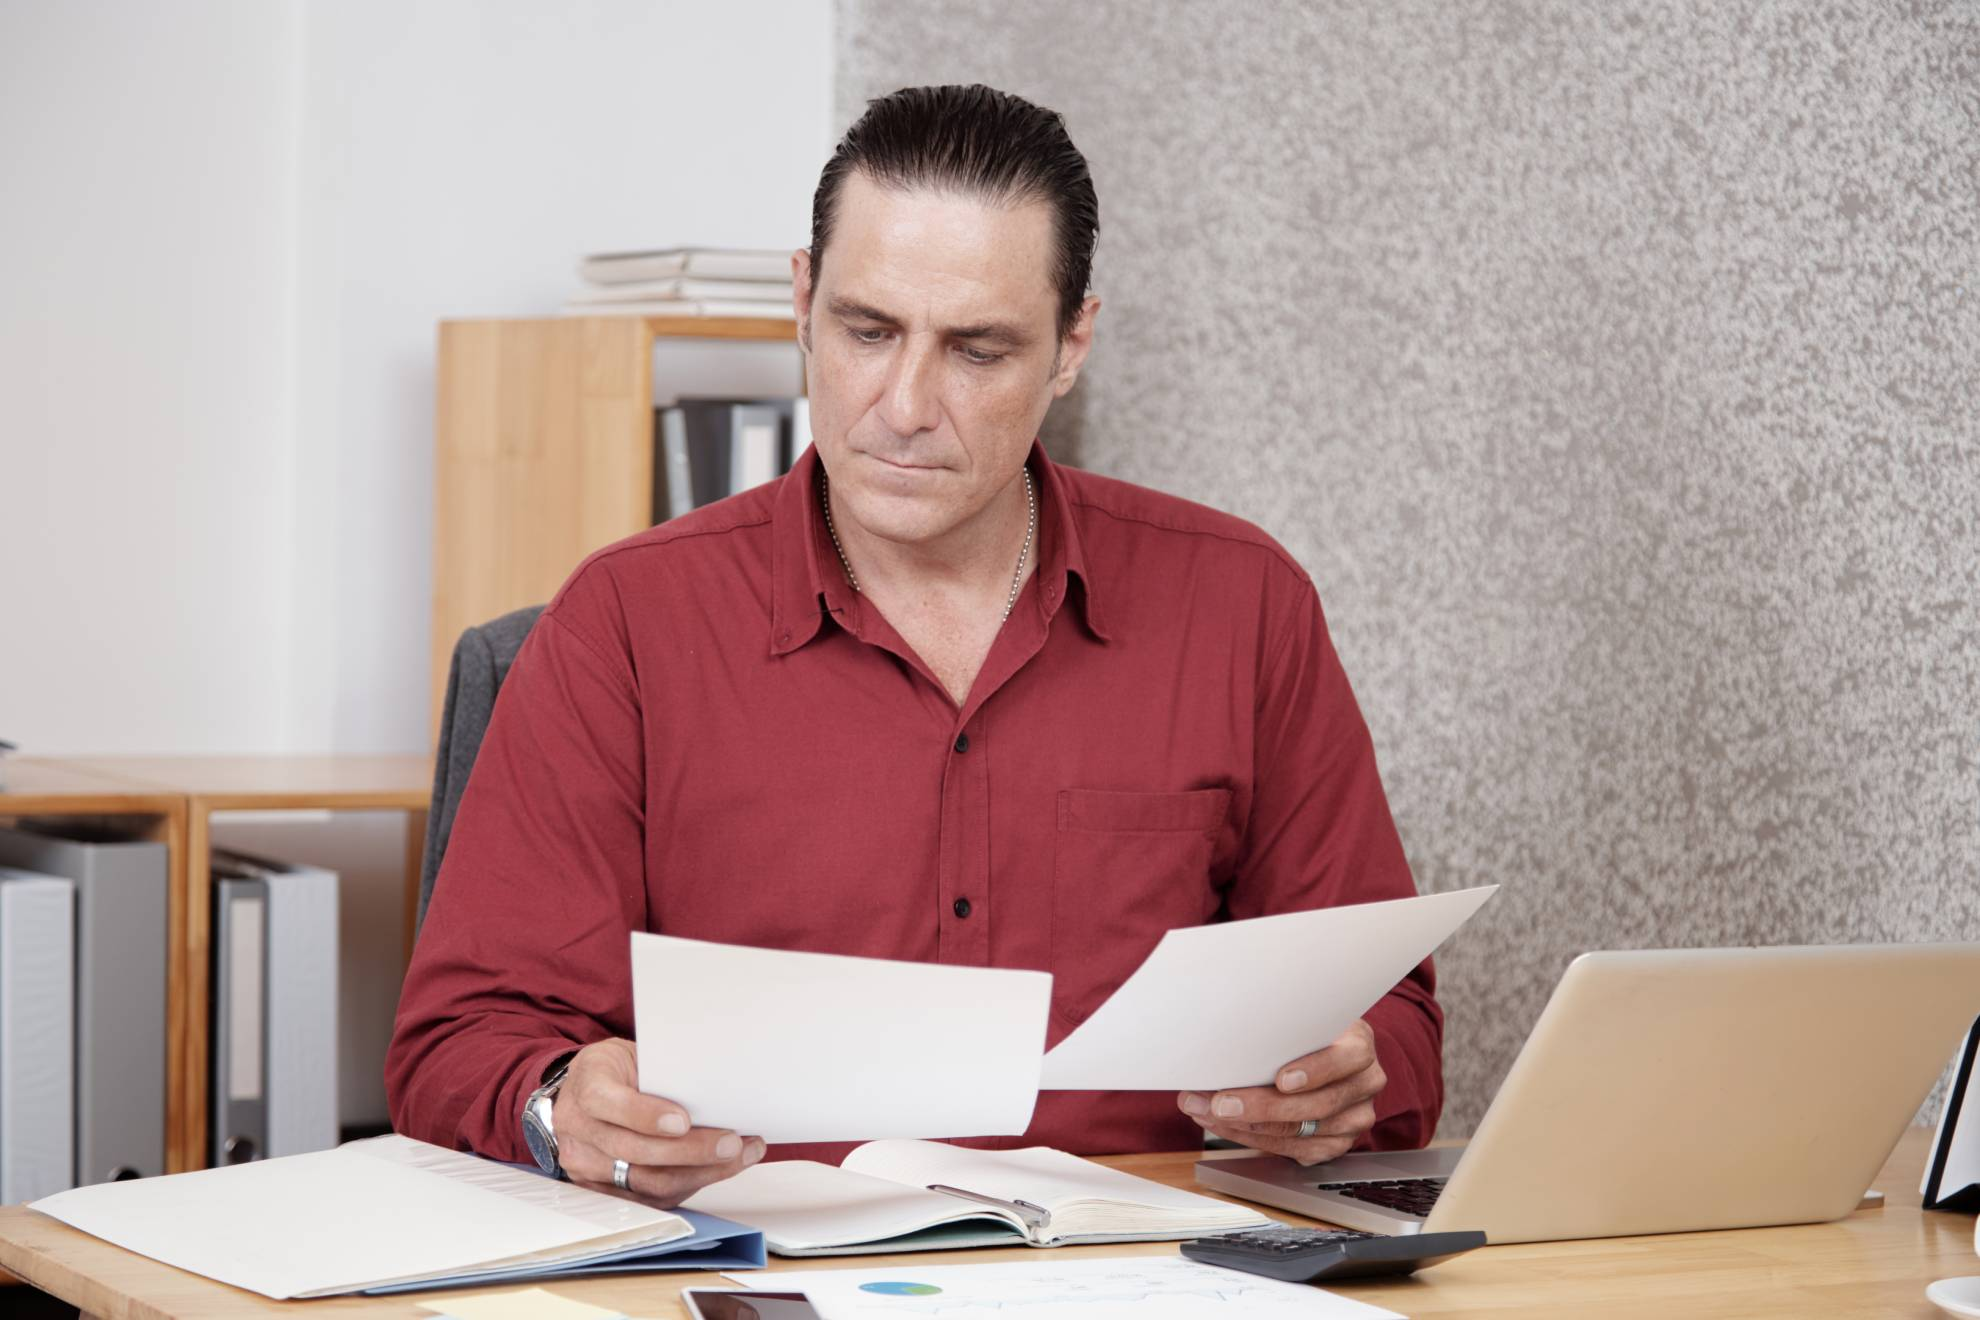 businessman-working-with-documents-2QH2884 (1)